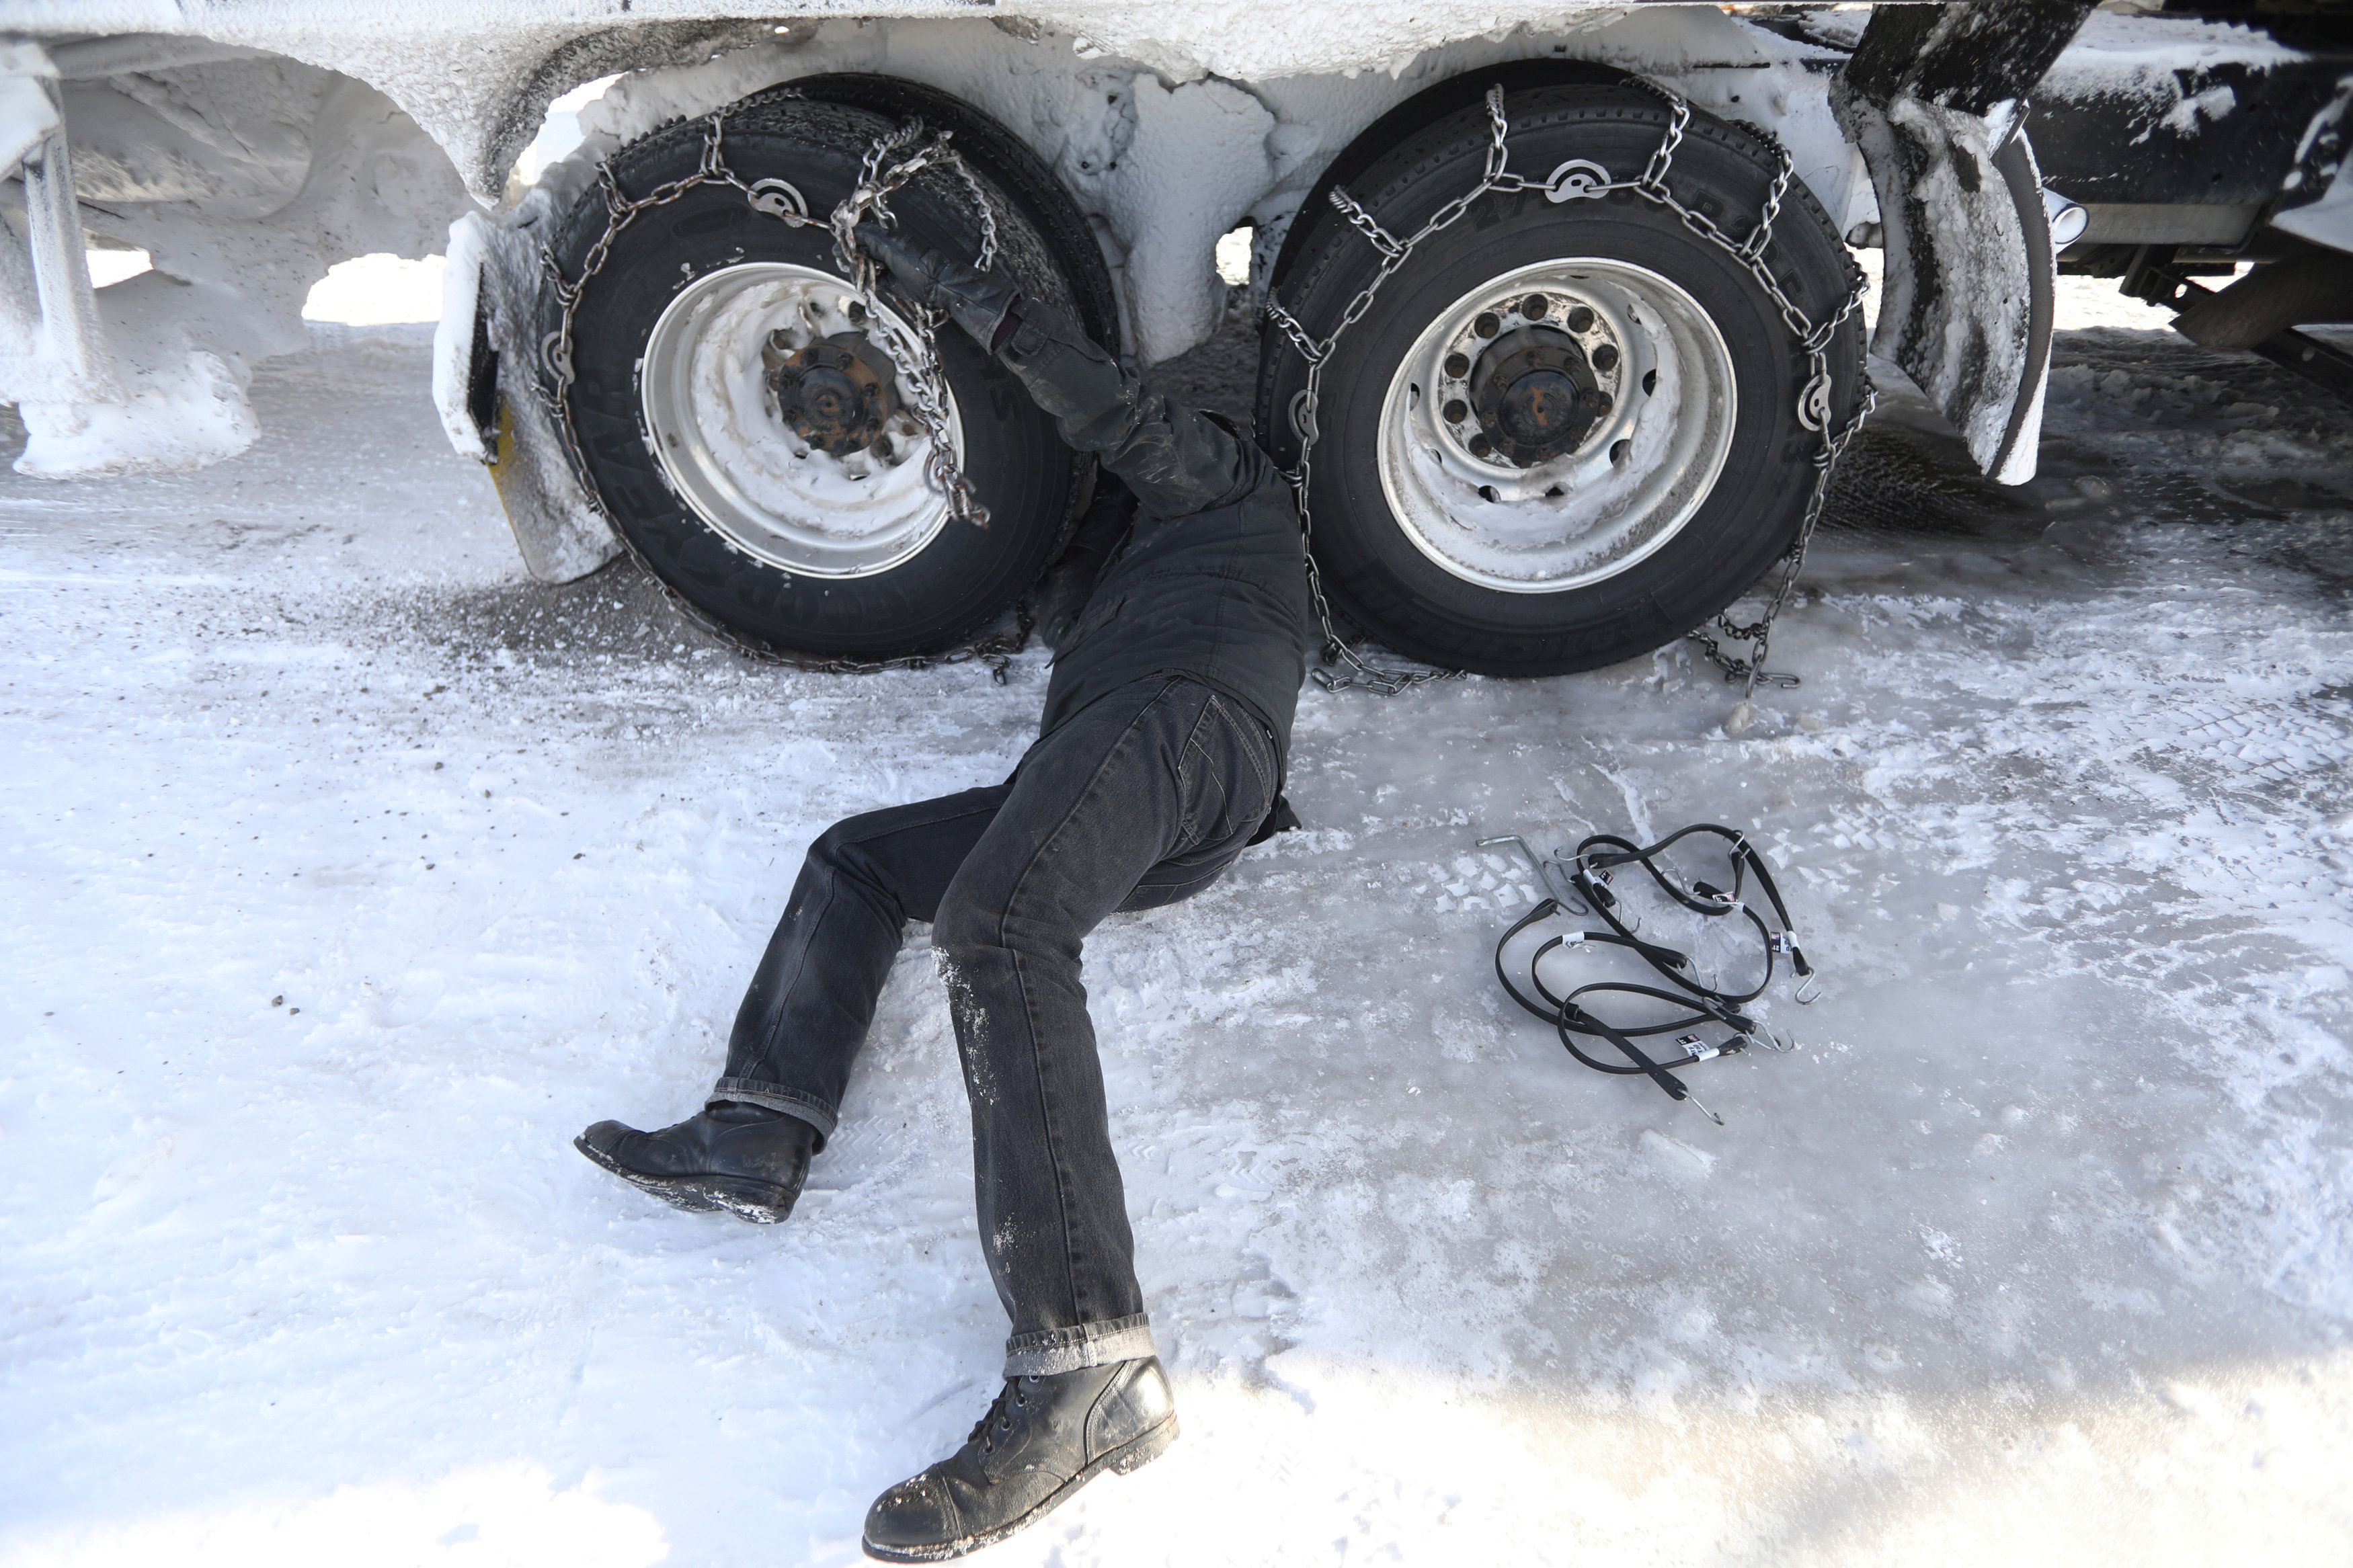 Semi truck driver removes chains from truck